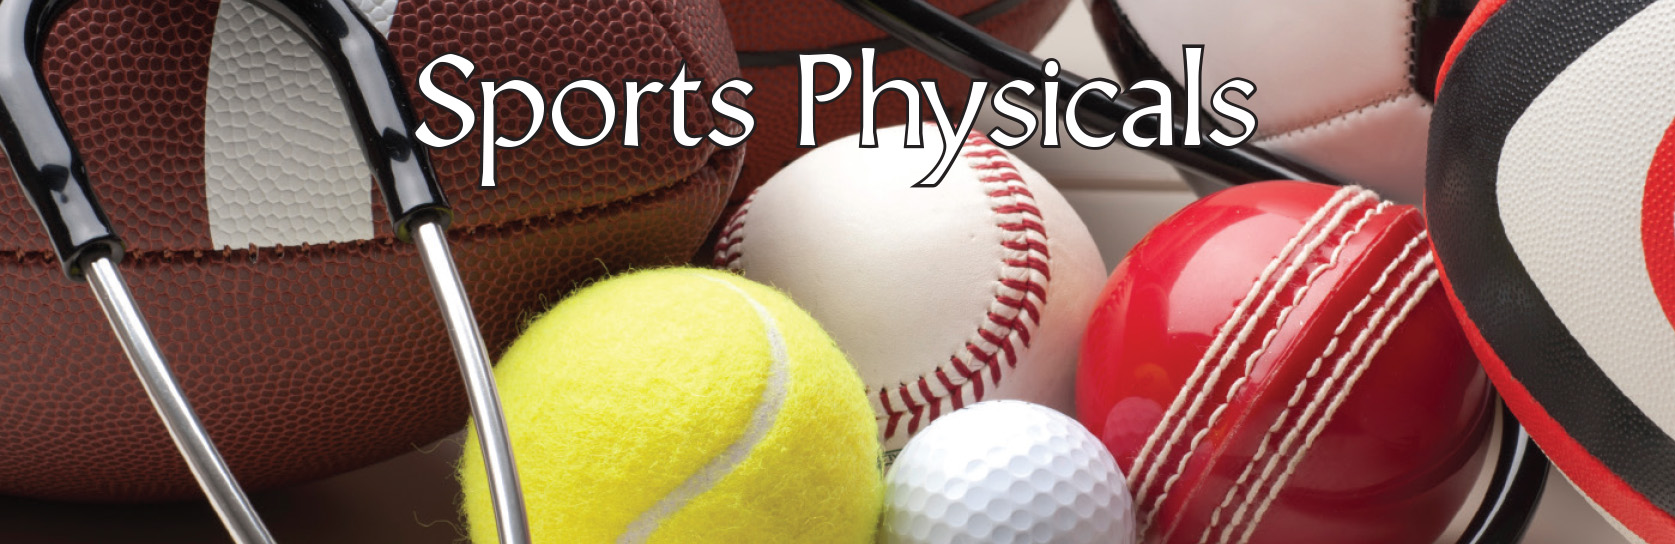 All through July and August receive a sports physical for only $25!